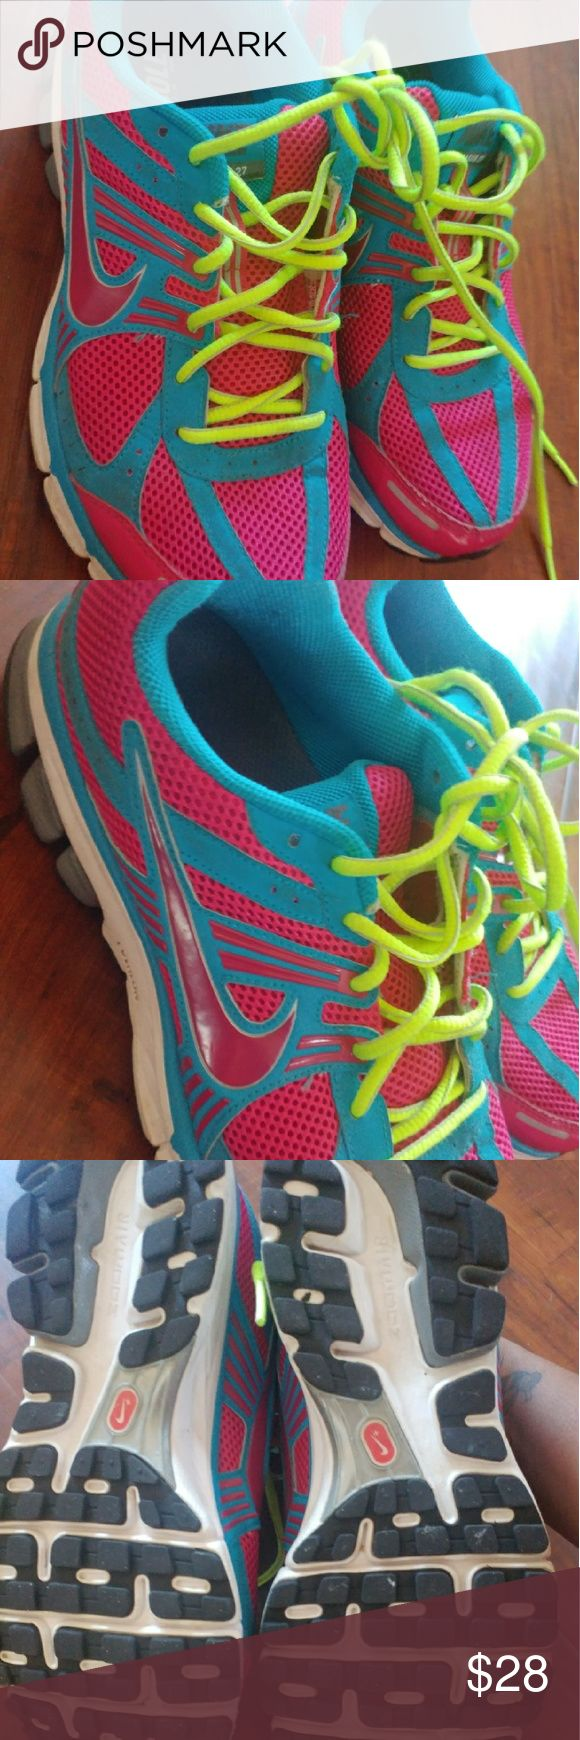 Nike like new Nike zoom like new condition Nike Shoes Sneakers